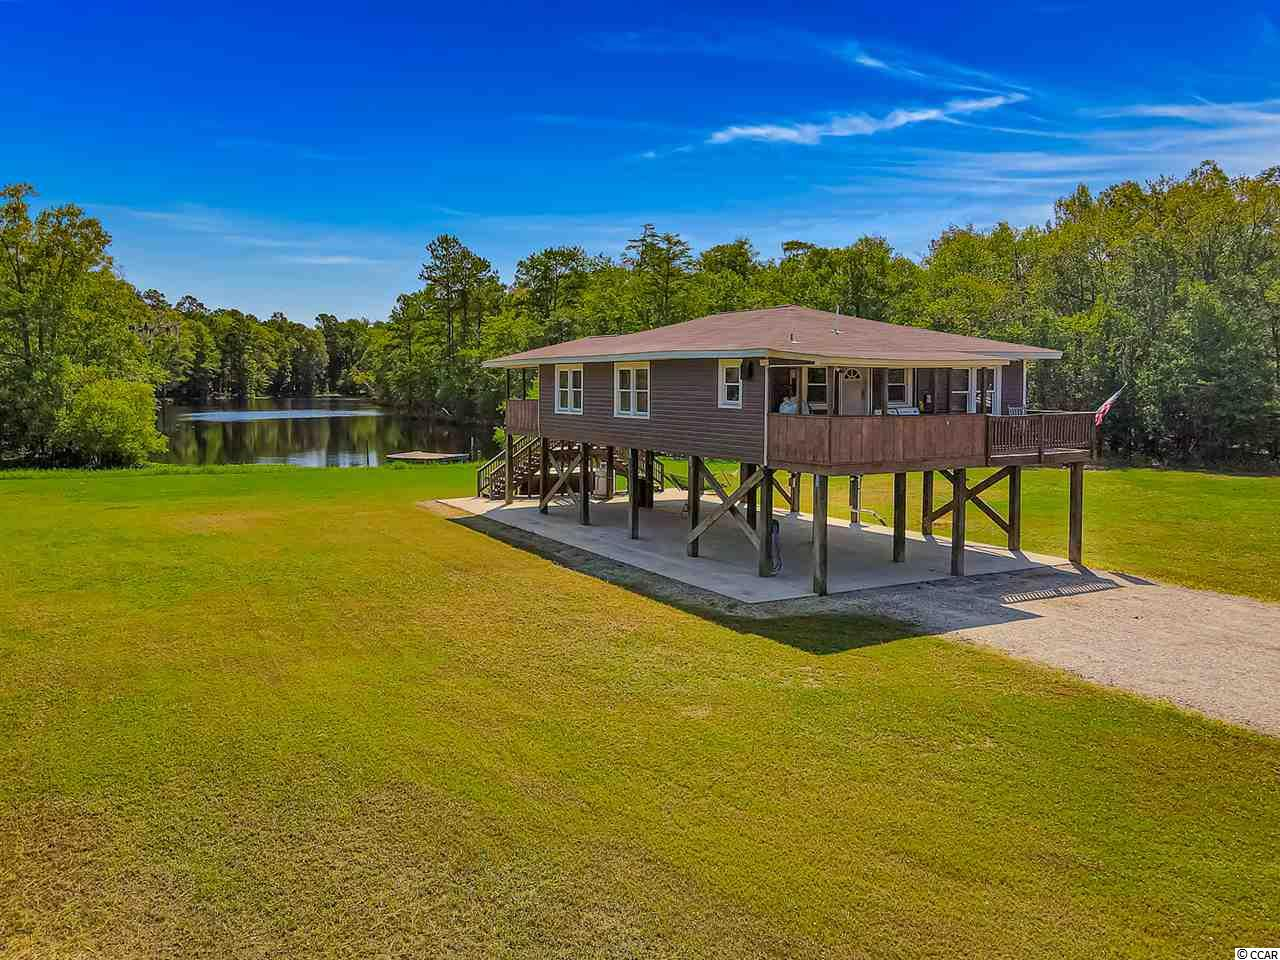 If you're looking for your own private getaway with over 25 acres of land, look no further. This raised beach home sits in a very secluded area of Conway but is only minutes to Lee's Landing. Home has it's very own private lake with plenty of space. Home has been upgraded greatly but still preserves the beautiful wood ceilings and walls! Property features 3 bedrooms, 2 bathrooms, gorgeous upgraded kitchen with gas stove and granite tops, deck overlooking the lake and more. This home is a rare find and won't last long at this price. It would be perfect for a second home, vacation getaway, or even a stay-cation spot for family events. The home has been completely remodeled and meticulously maintained. Property also features a 40 ft storage container, carport as well as plenty of underneath parking. This isn't a property you see every day, a true gem. Home is easy to see, so schedule a showing before it's too late!!!